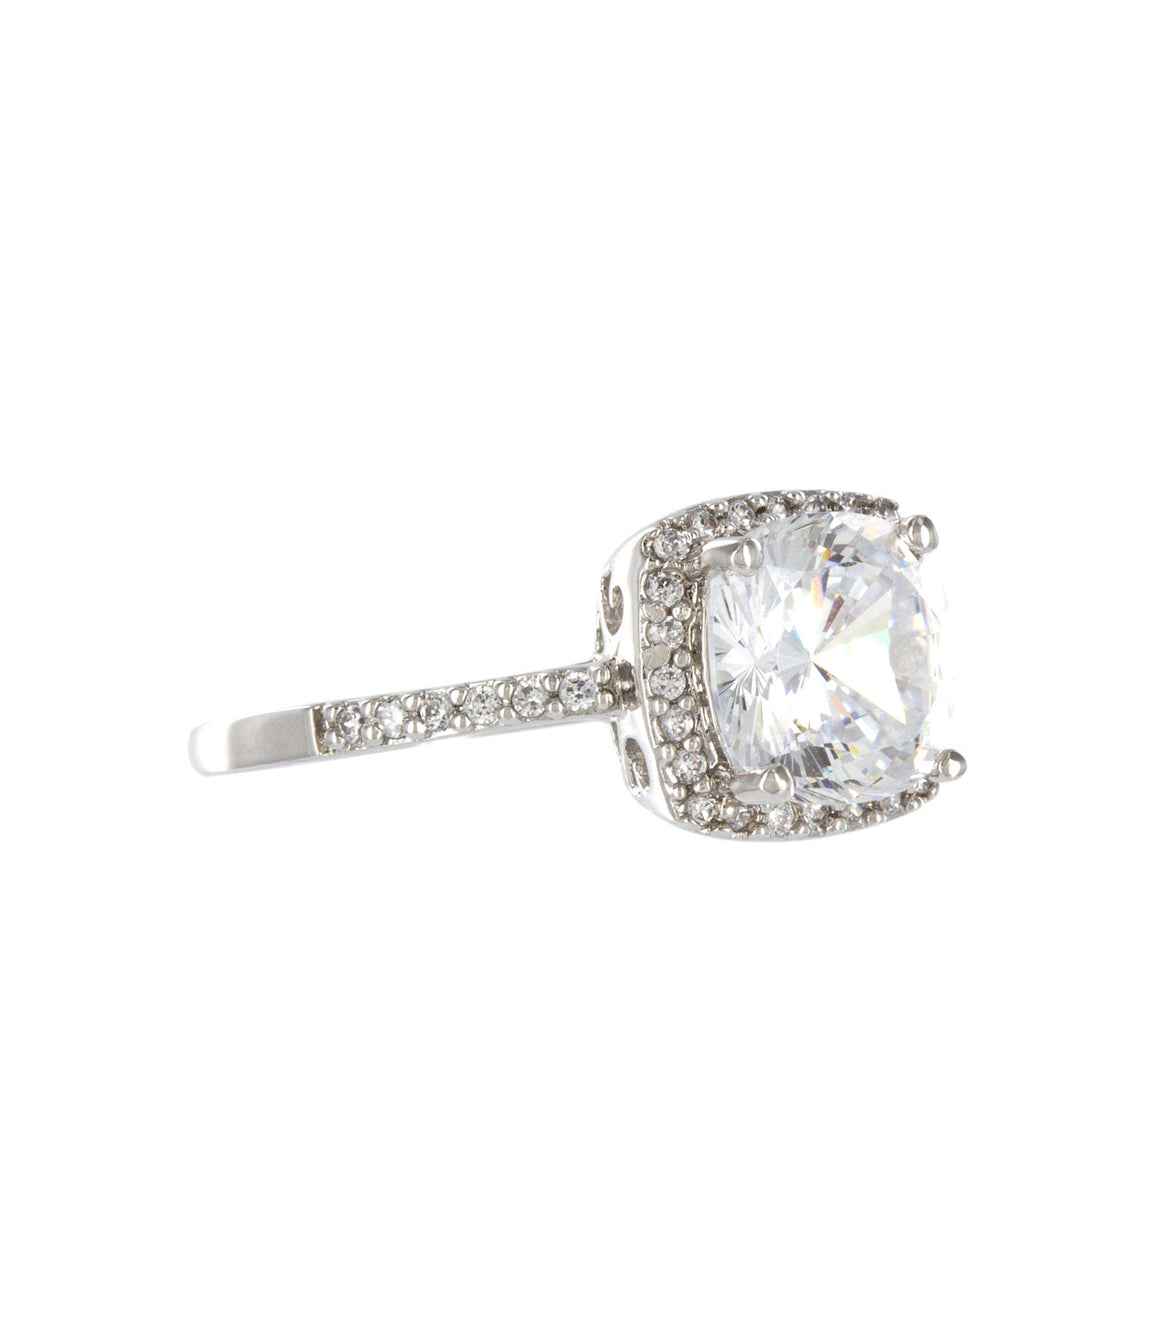 Oversize statement Cubic Zirconia Ring.